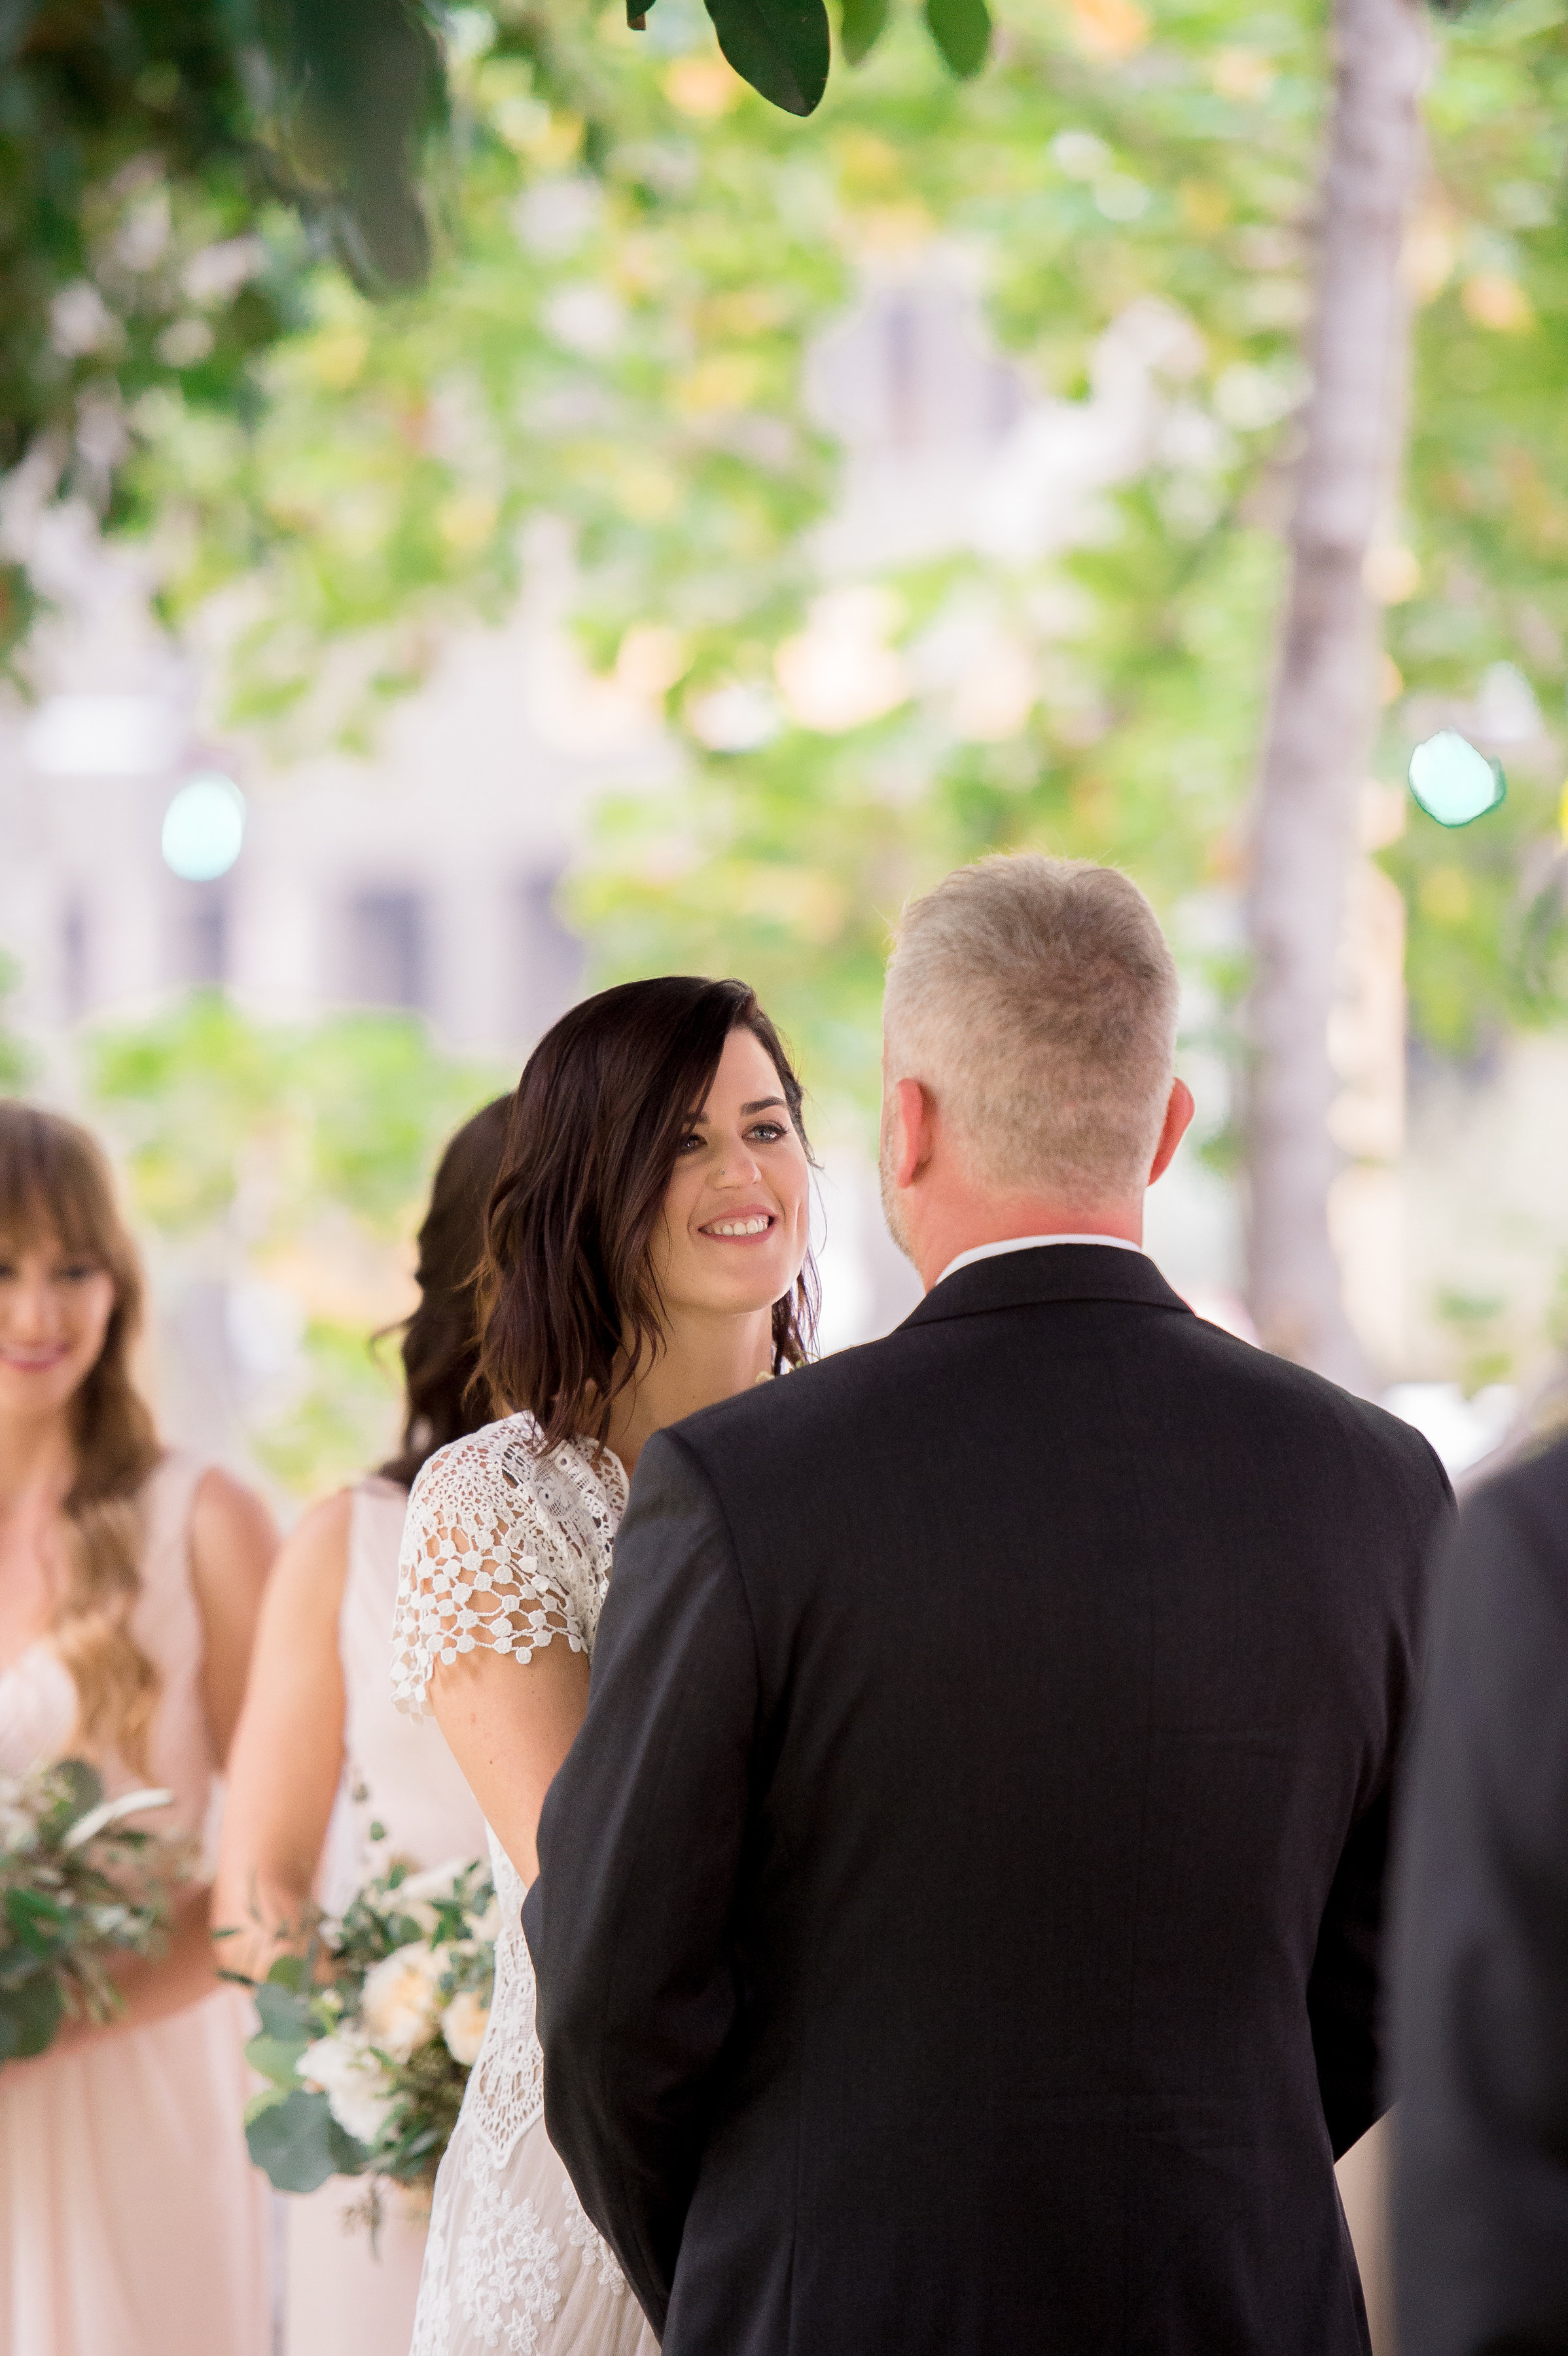 socal-wedding-consultant-best-wedding-planners-in-southern-california-cafe-pinot-wedding-planner30.jpg